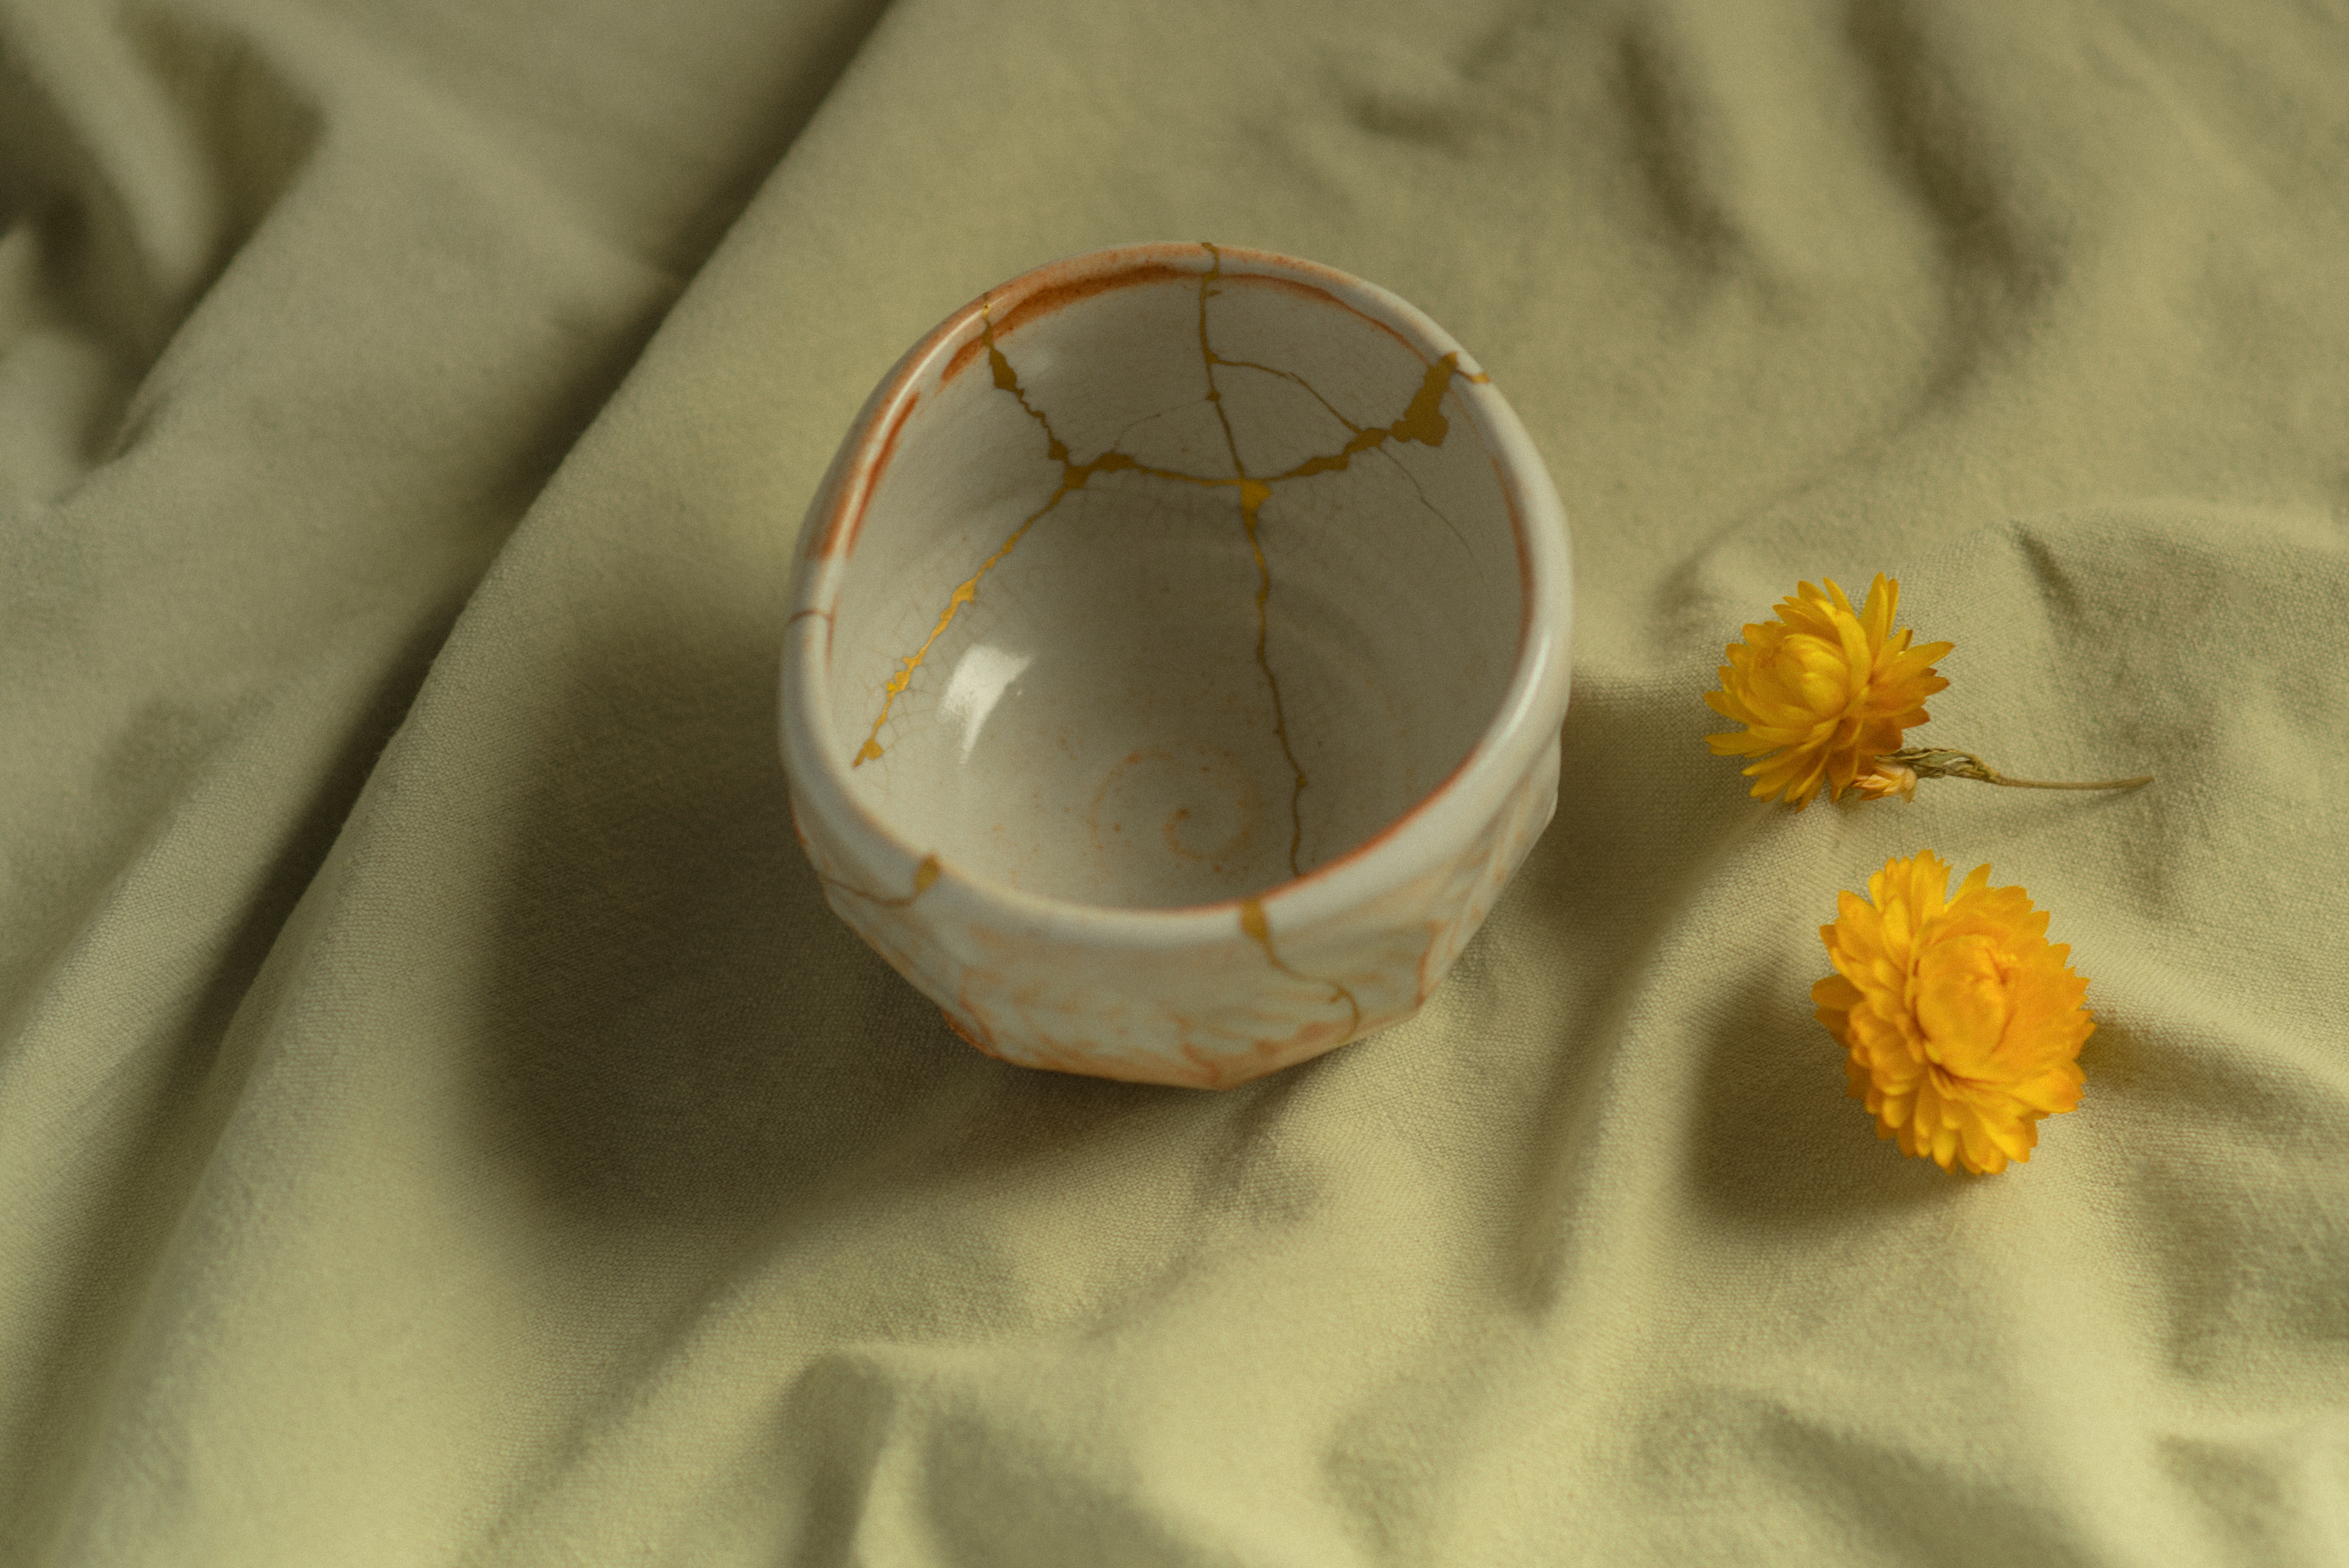 A bowl with cracks filled in with gold sits on a canvas sheet beside a yellow flower.